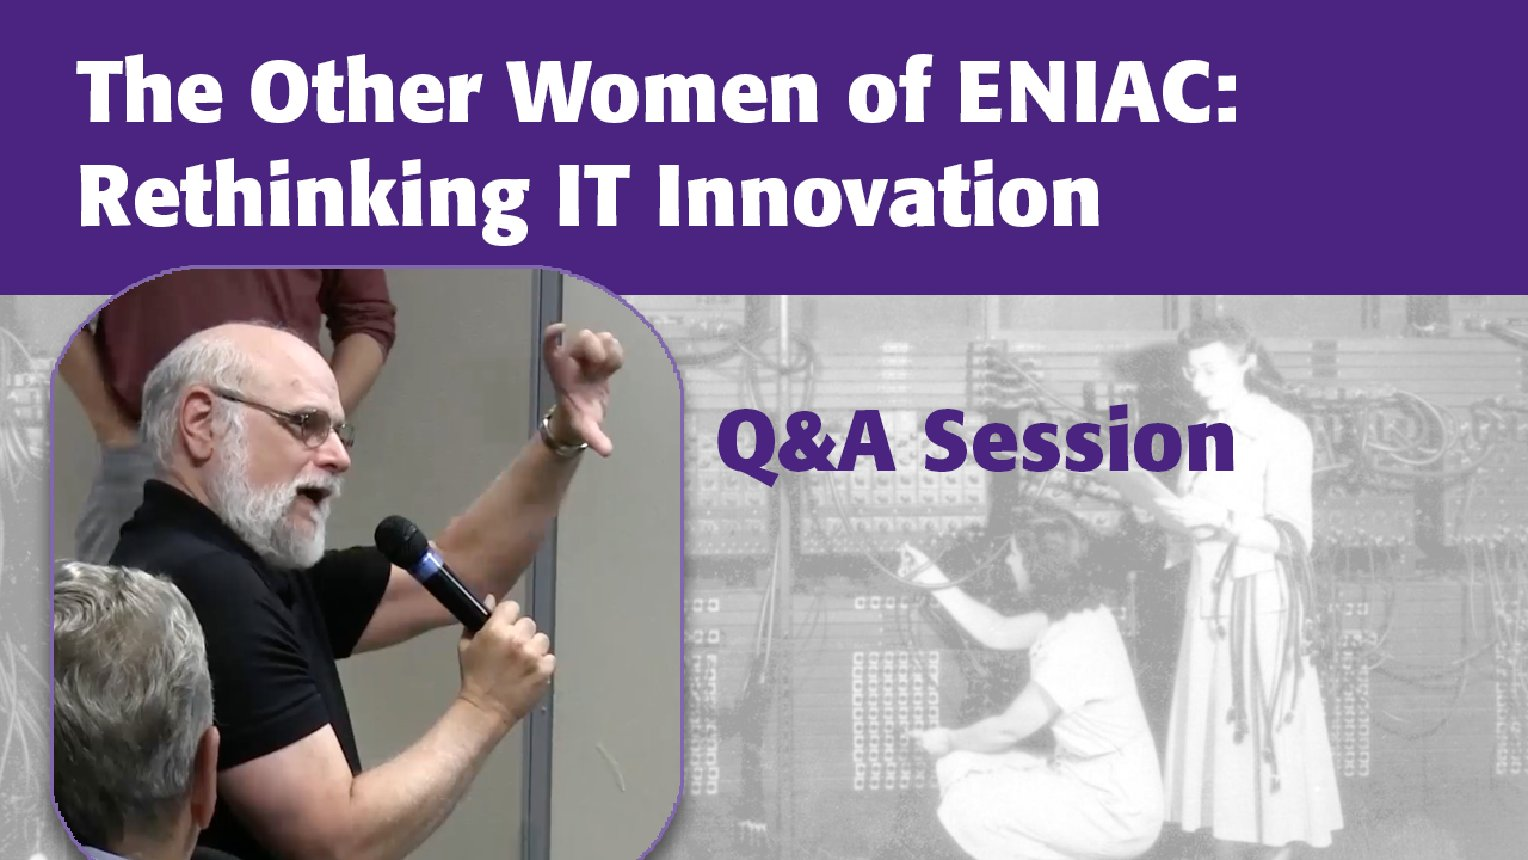 Q&A - The Other Women of ENIAC: Rethinking IT Innovation